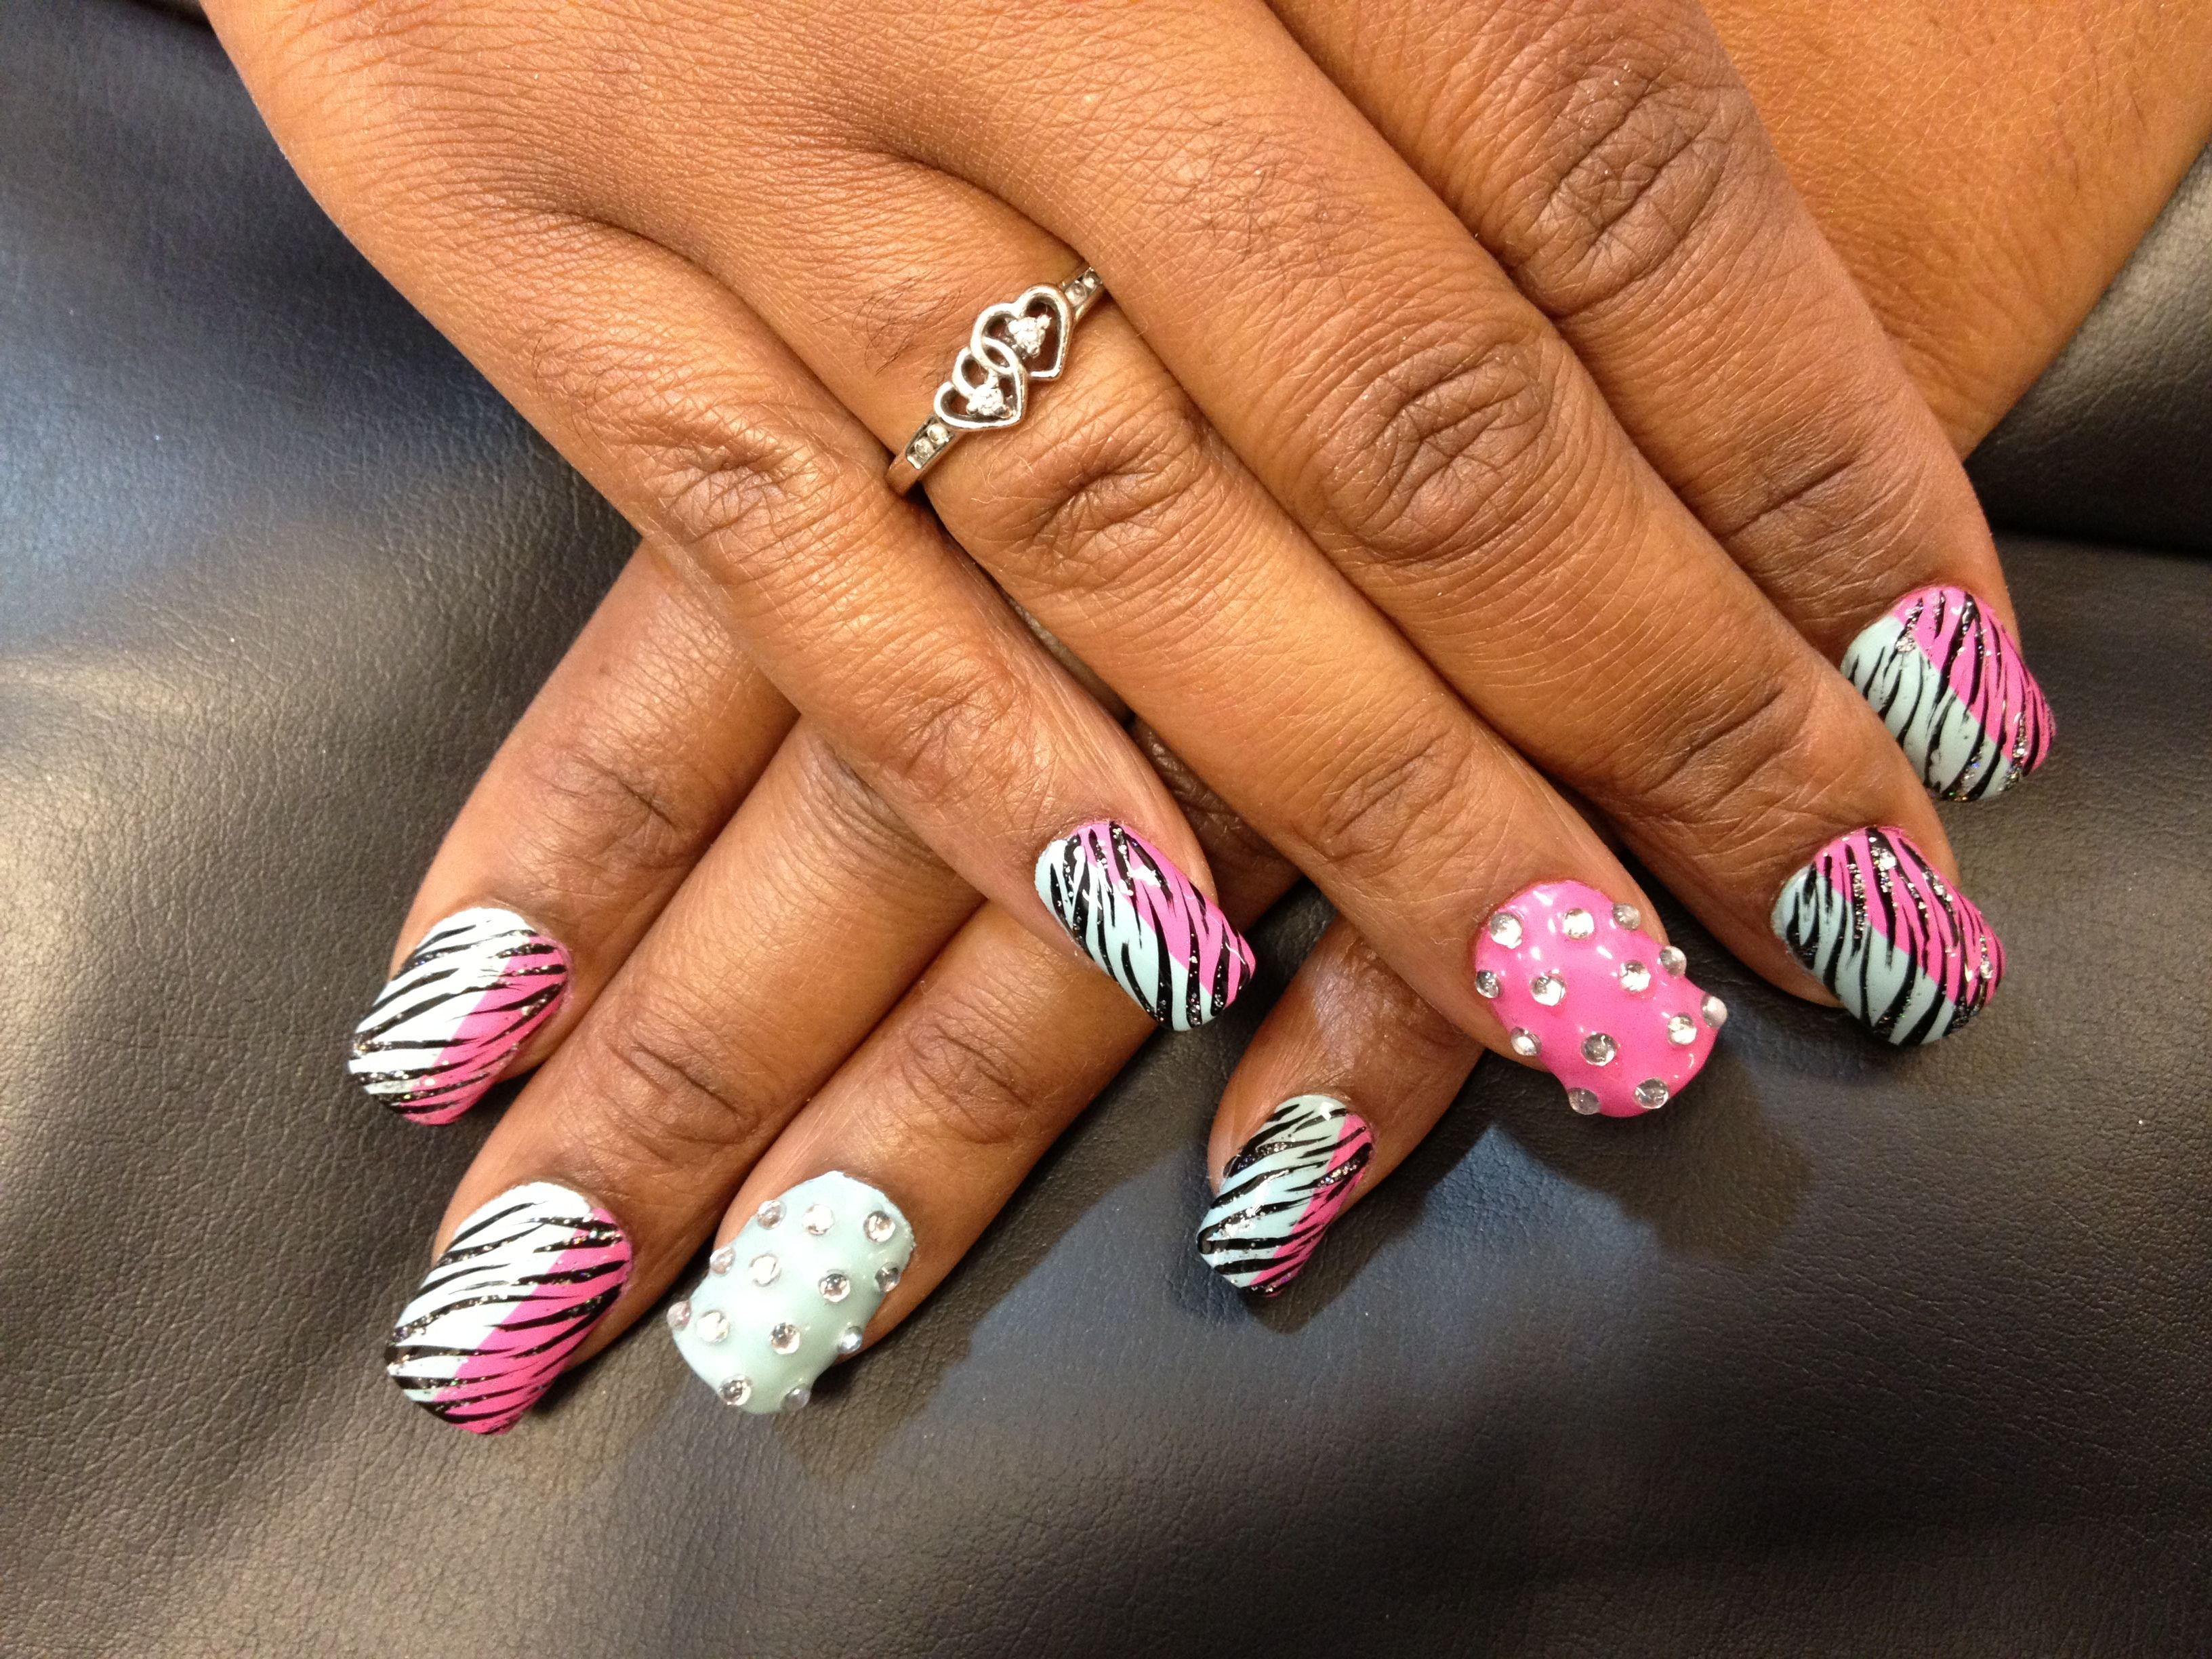 Nails art#Zebra design#Cool nail art @ Ocean Nails and Spa.FWB, Fl ...